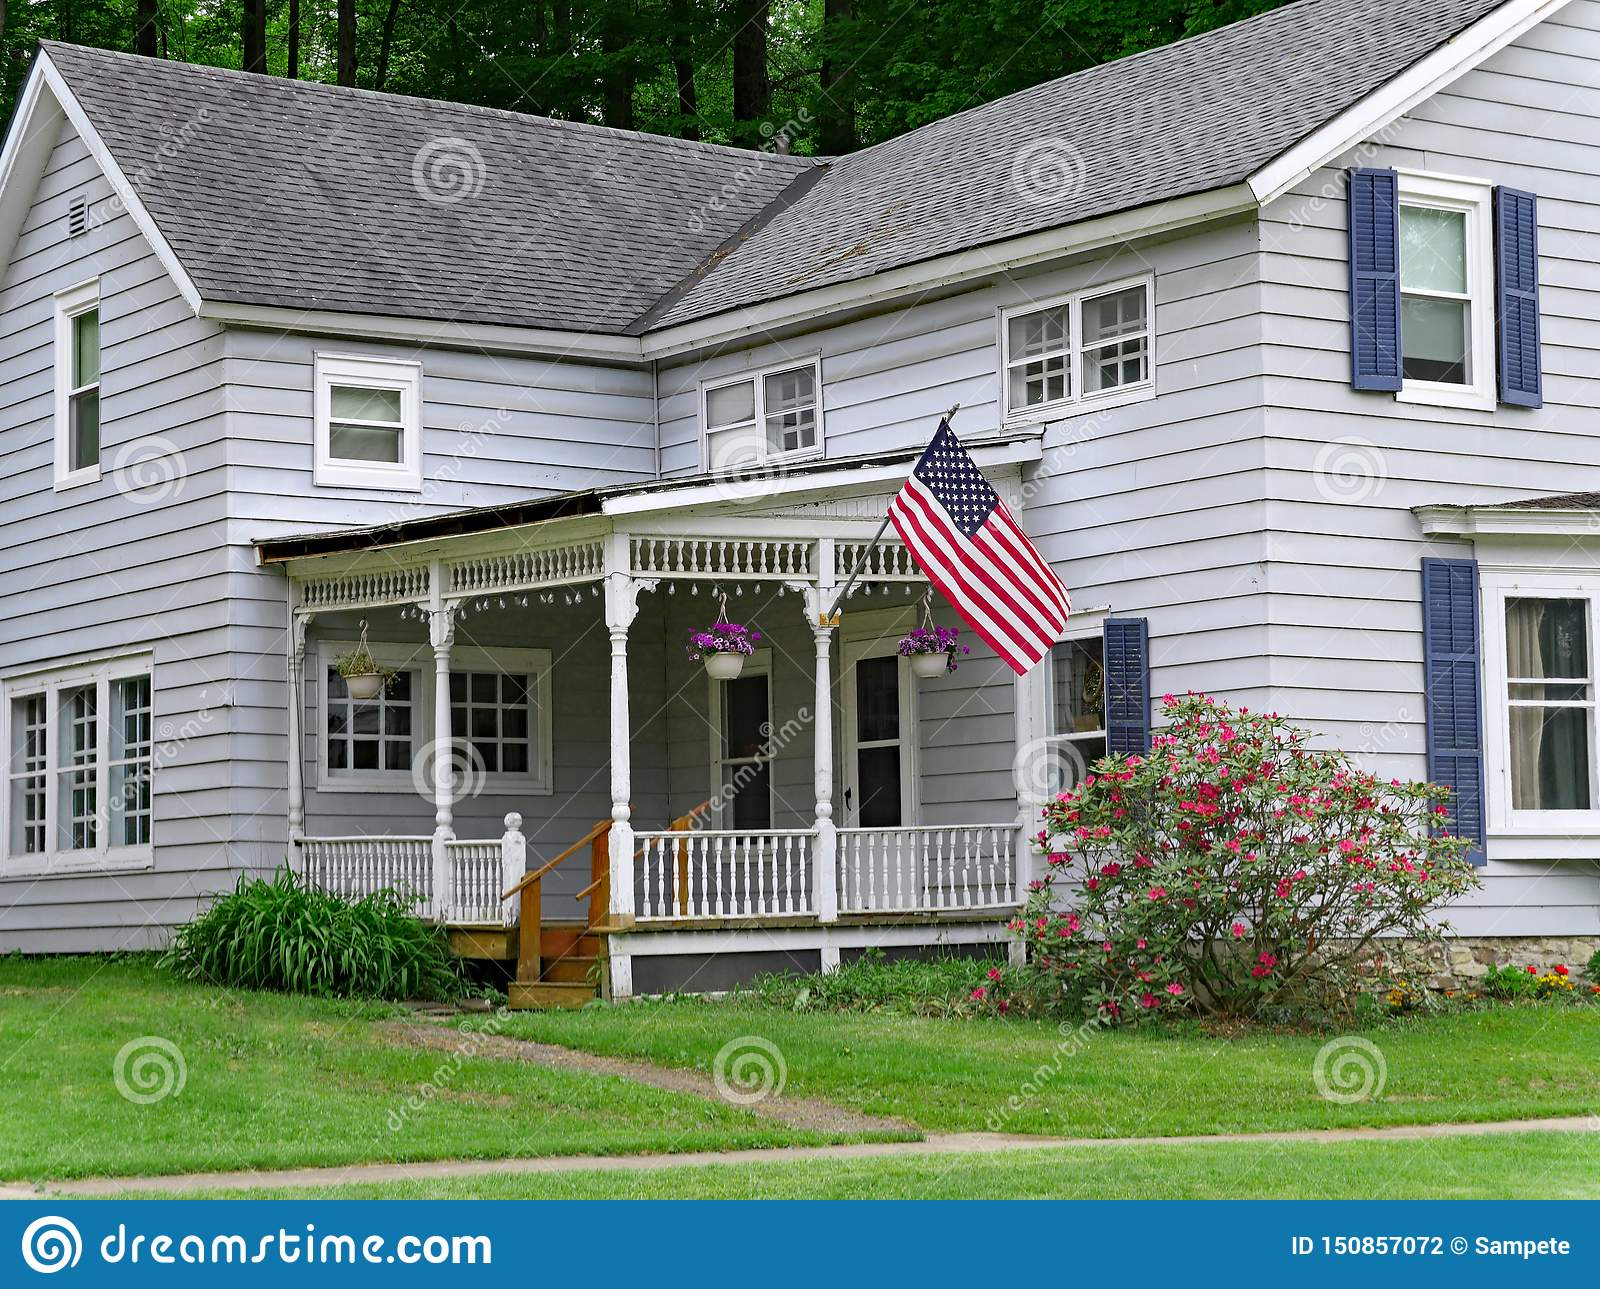 House with large porch and American flag